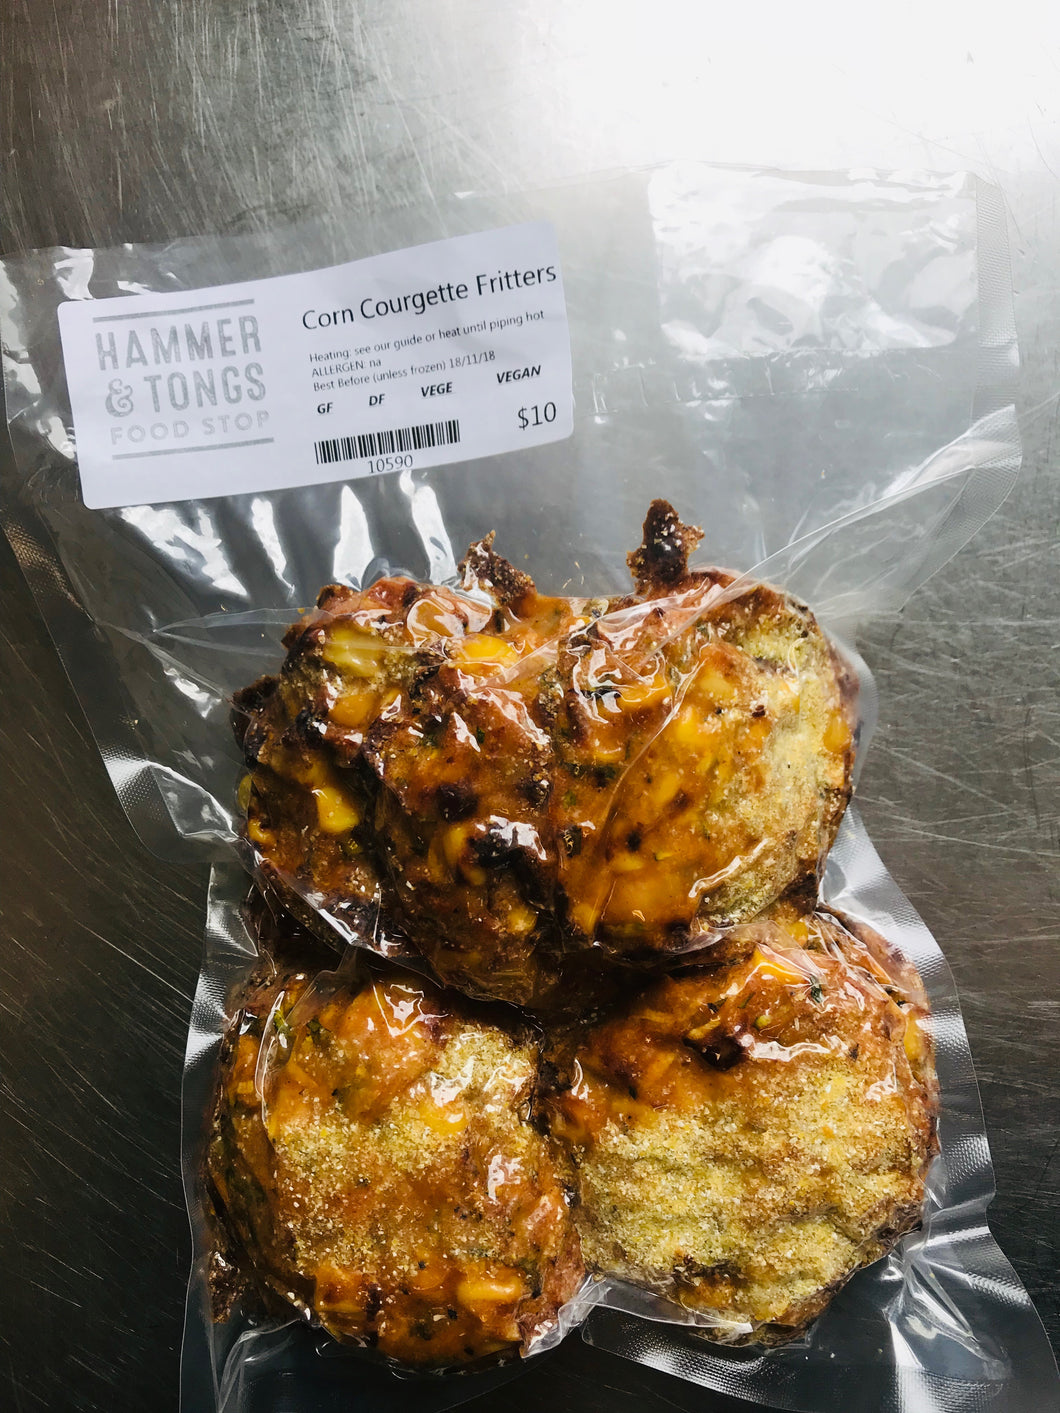 Corn Courgette Fritters